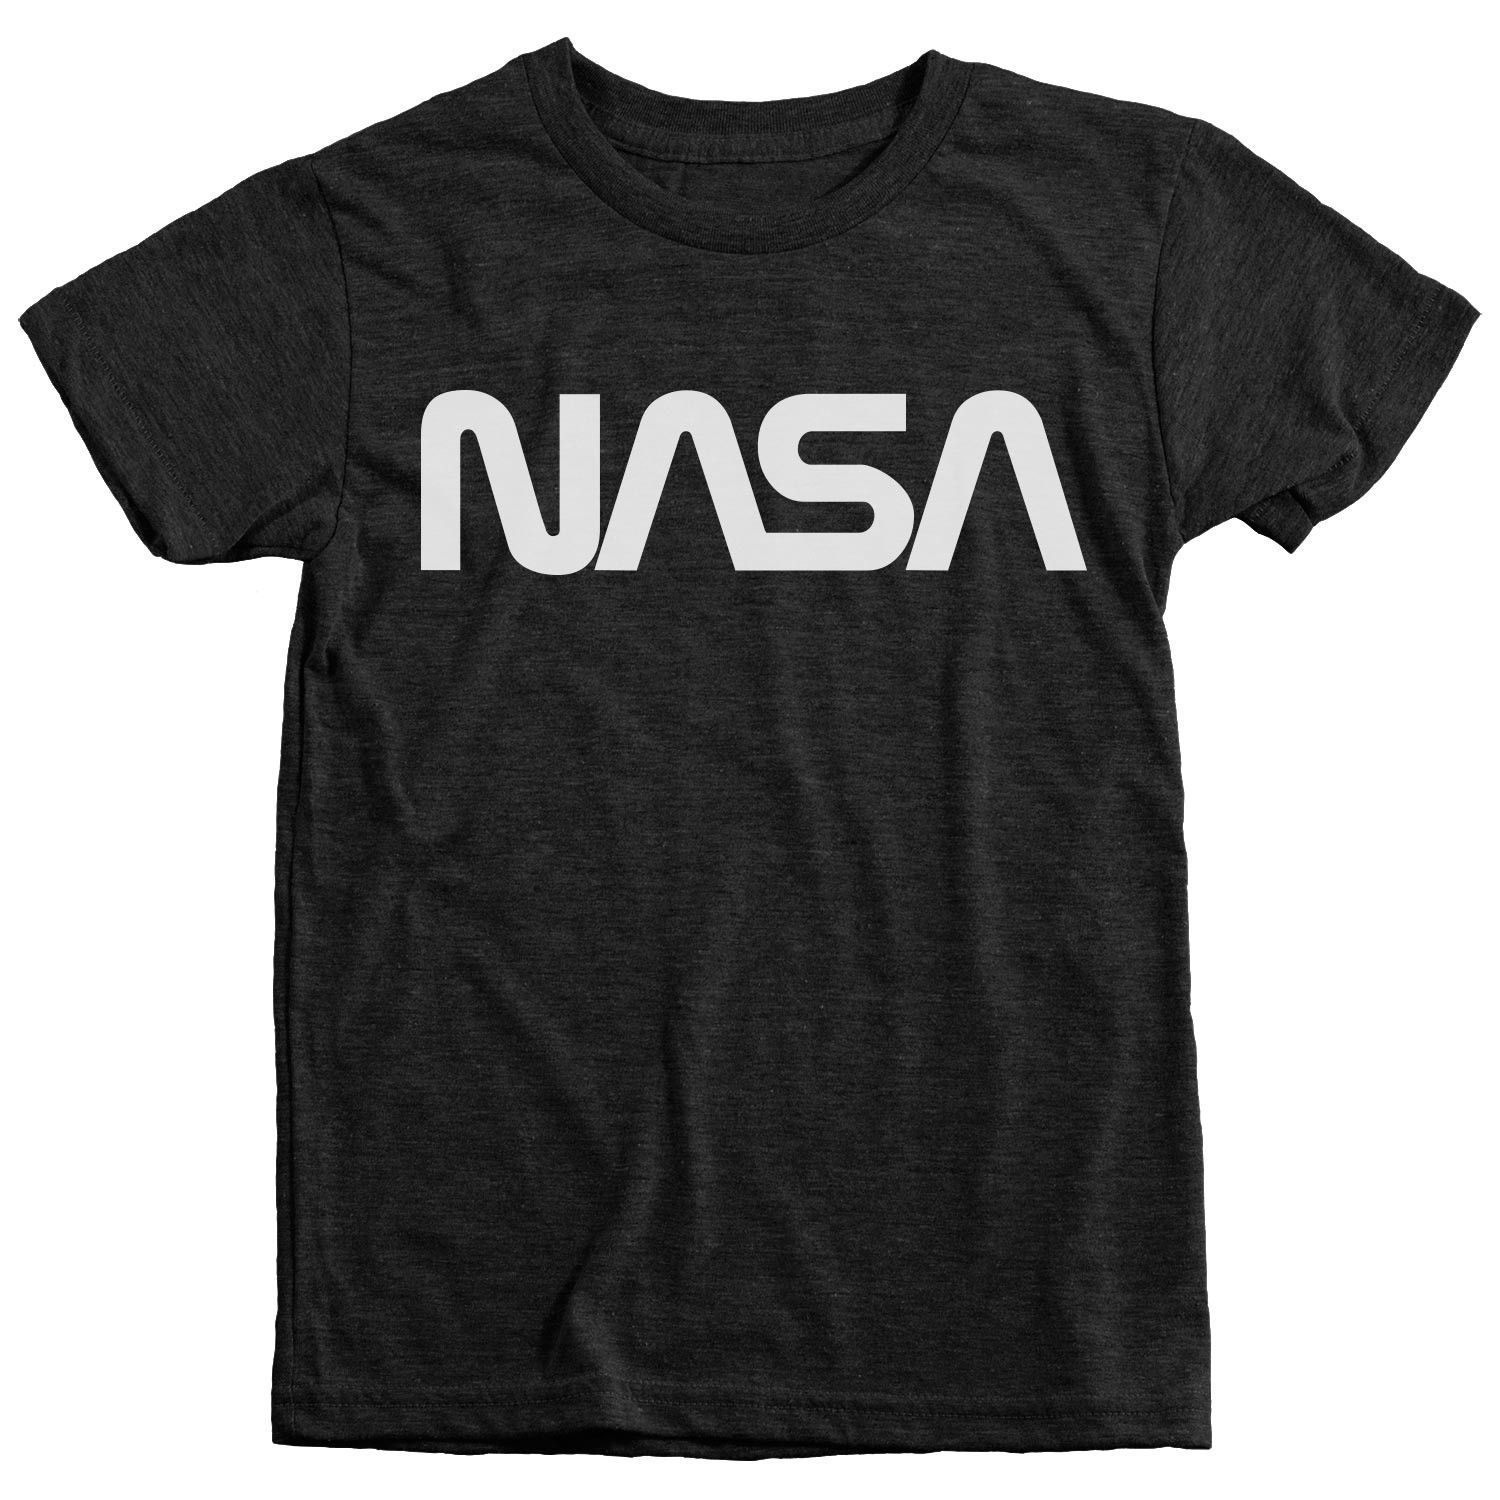 NASA Worm Logo Kids TriBlend TShirt Show your love for